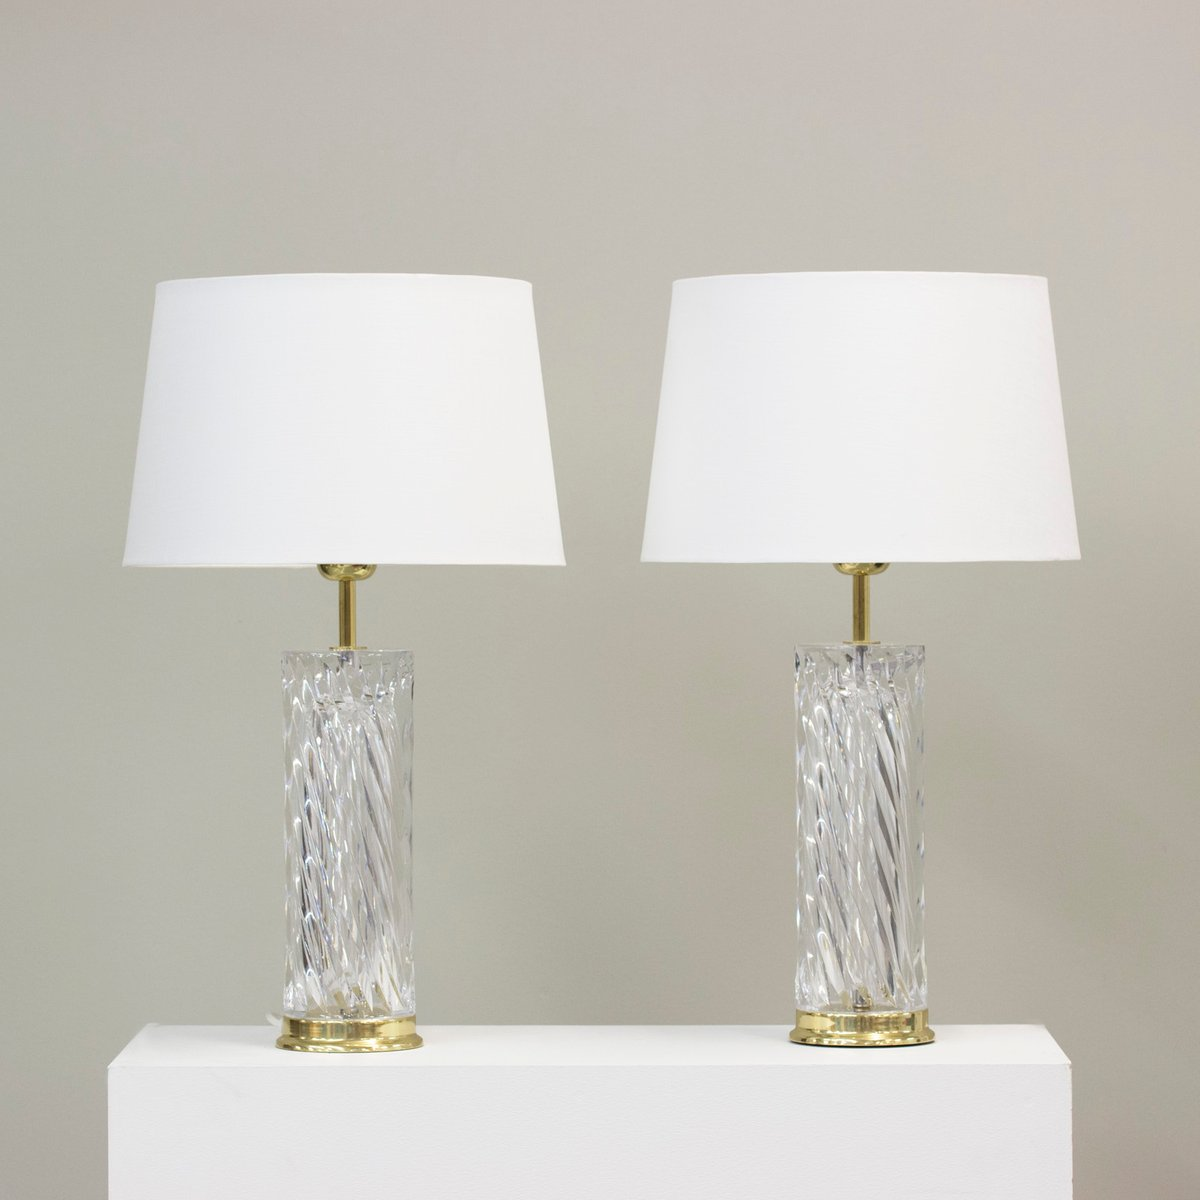 Crystal Chandelier Table Lamps For Sale: Crystal Table Lamps By Olle Alberius For Orrefors, 1970s